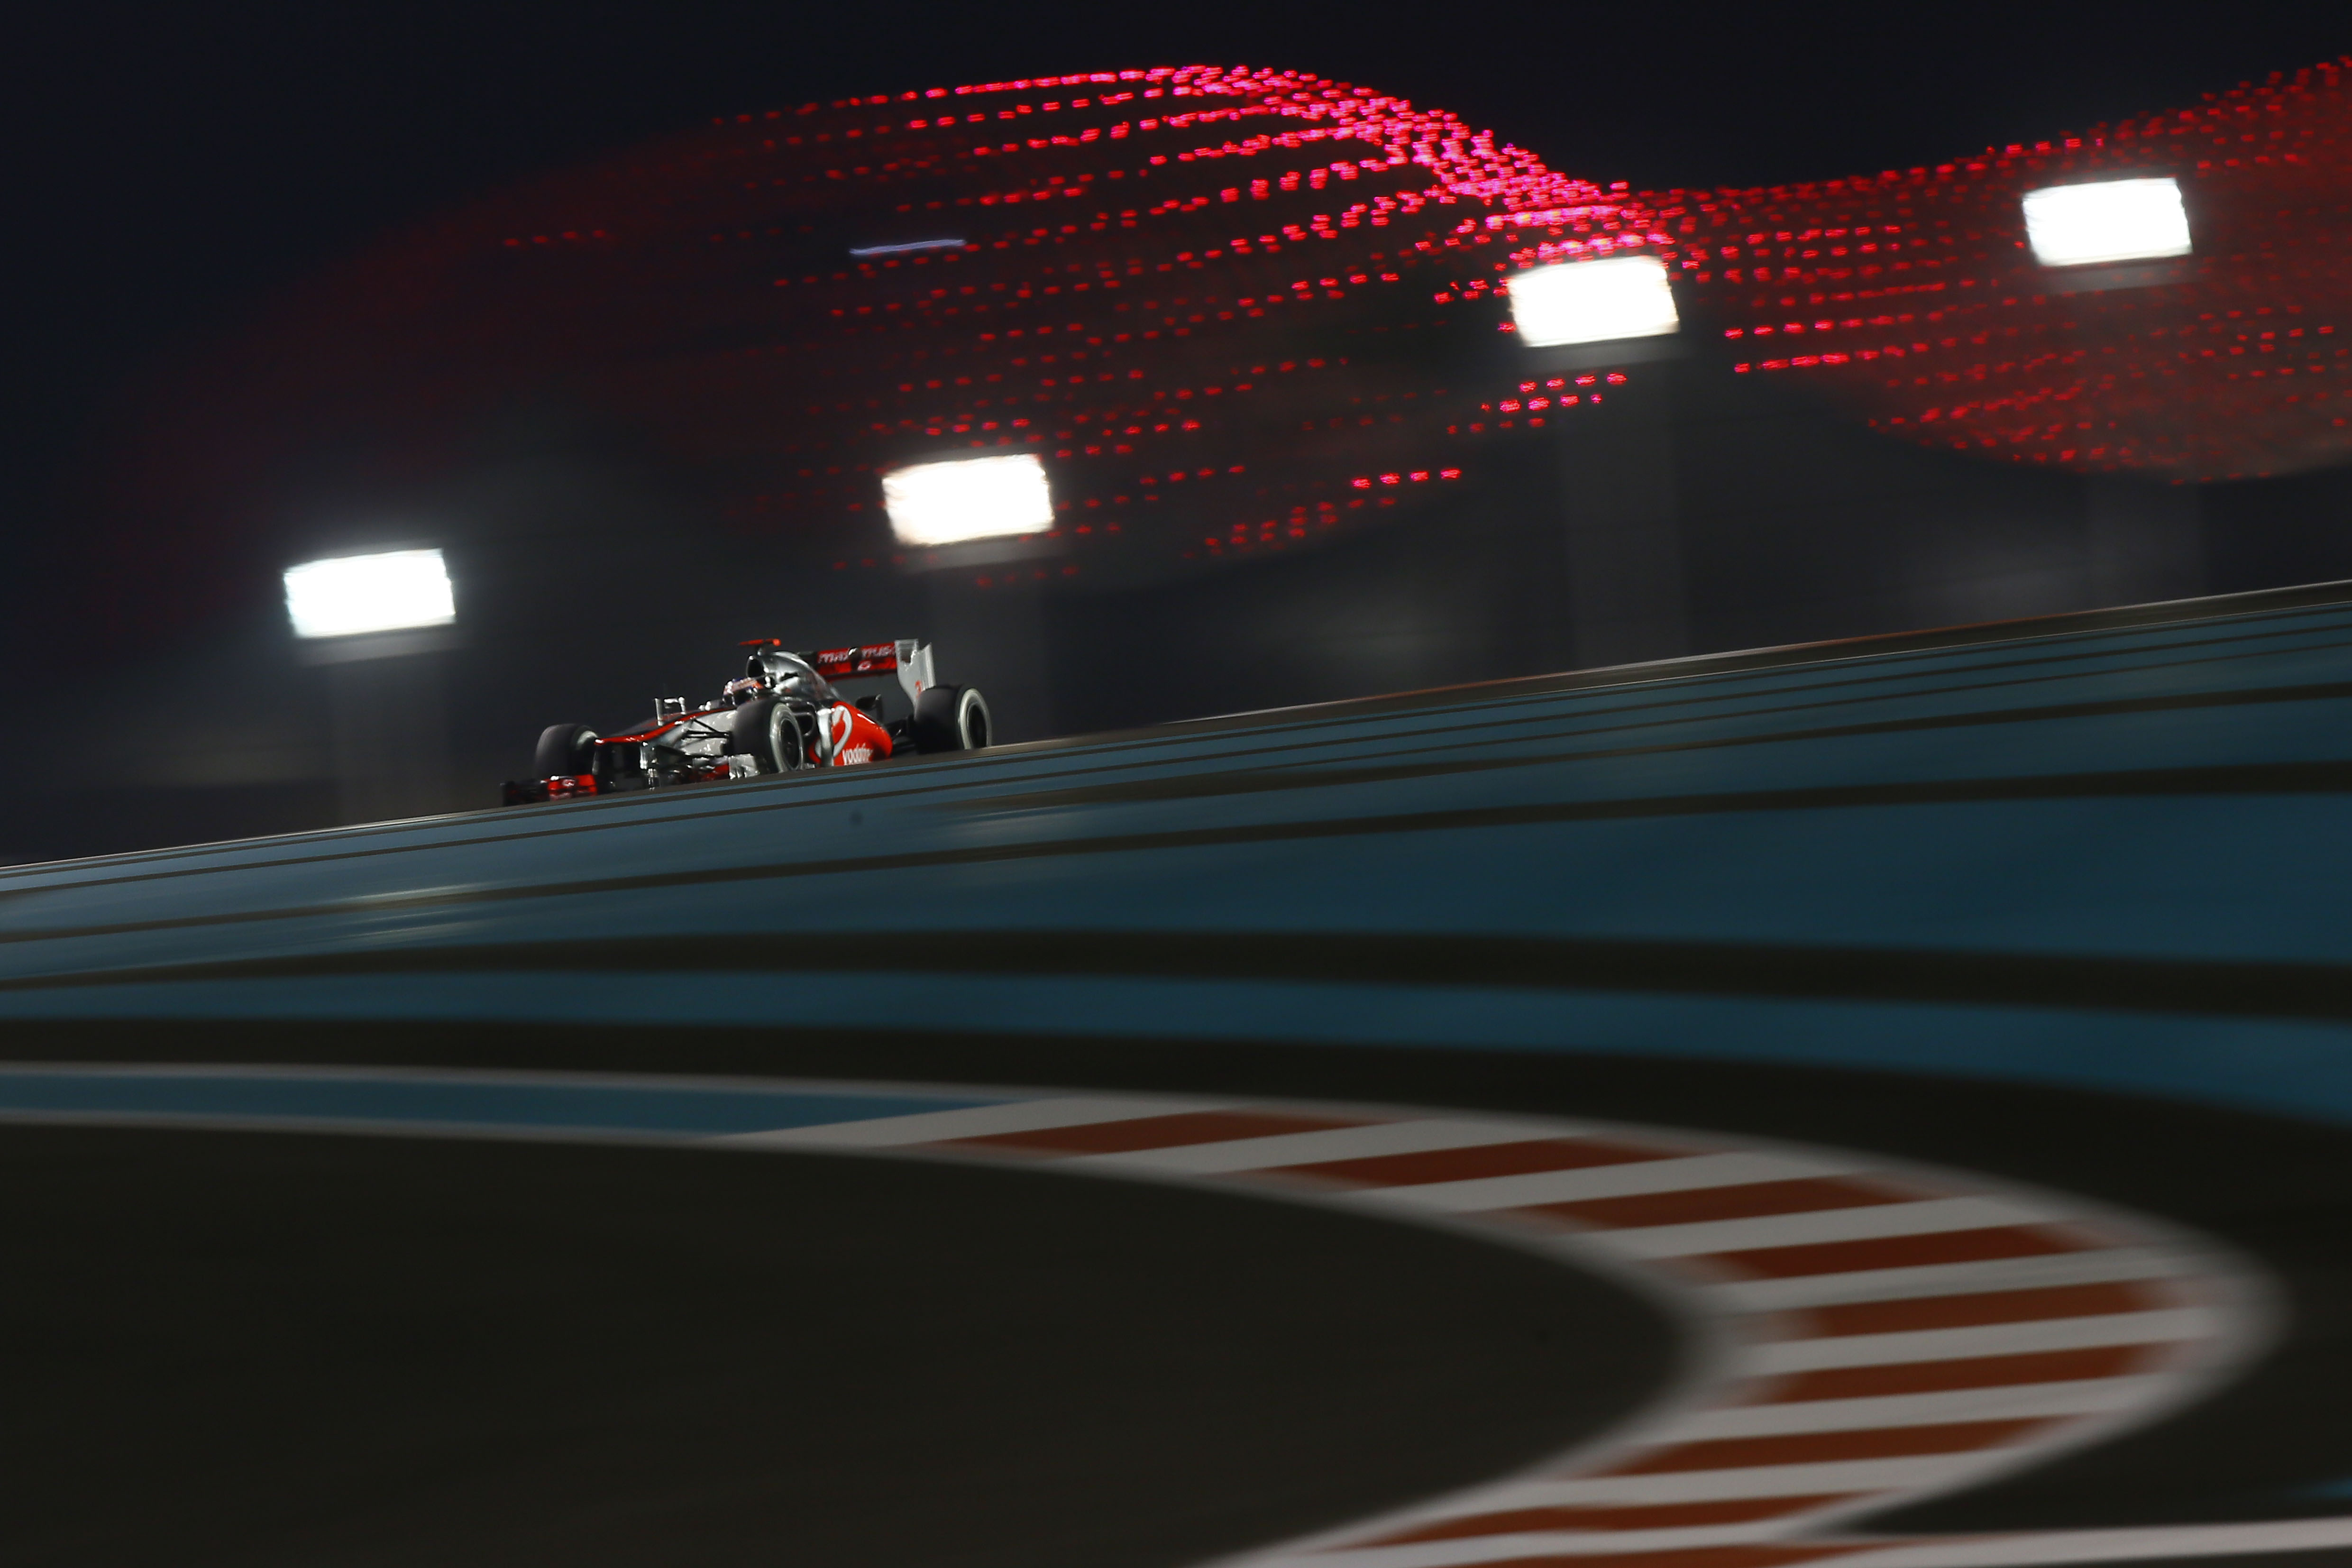 5 Things You Might Not Know About The Abu Dhabi Grand Prix Starting Lights Image Source Vodafone Mclaren Mercedes